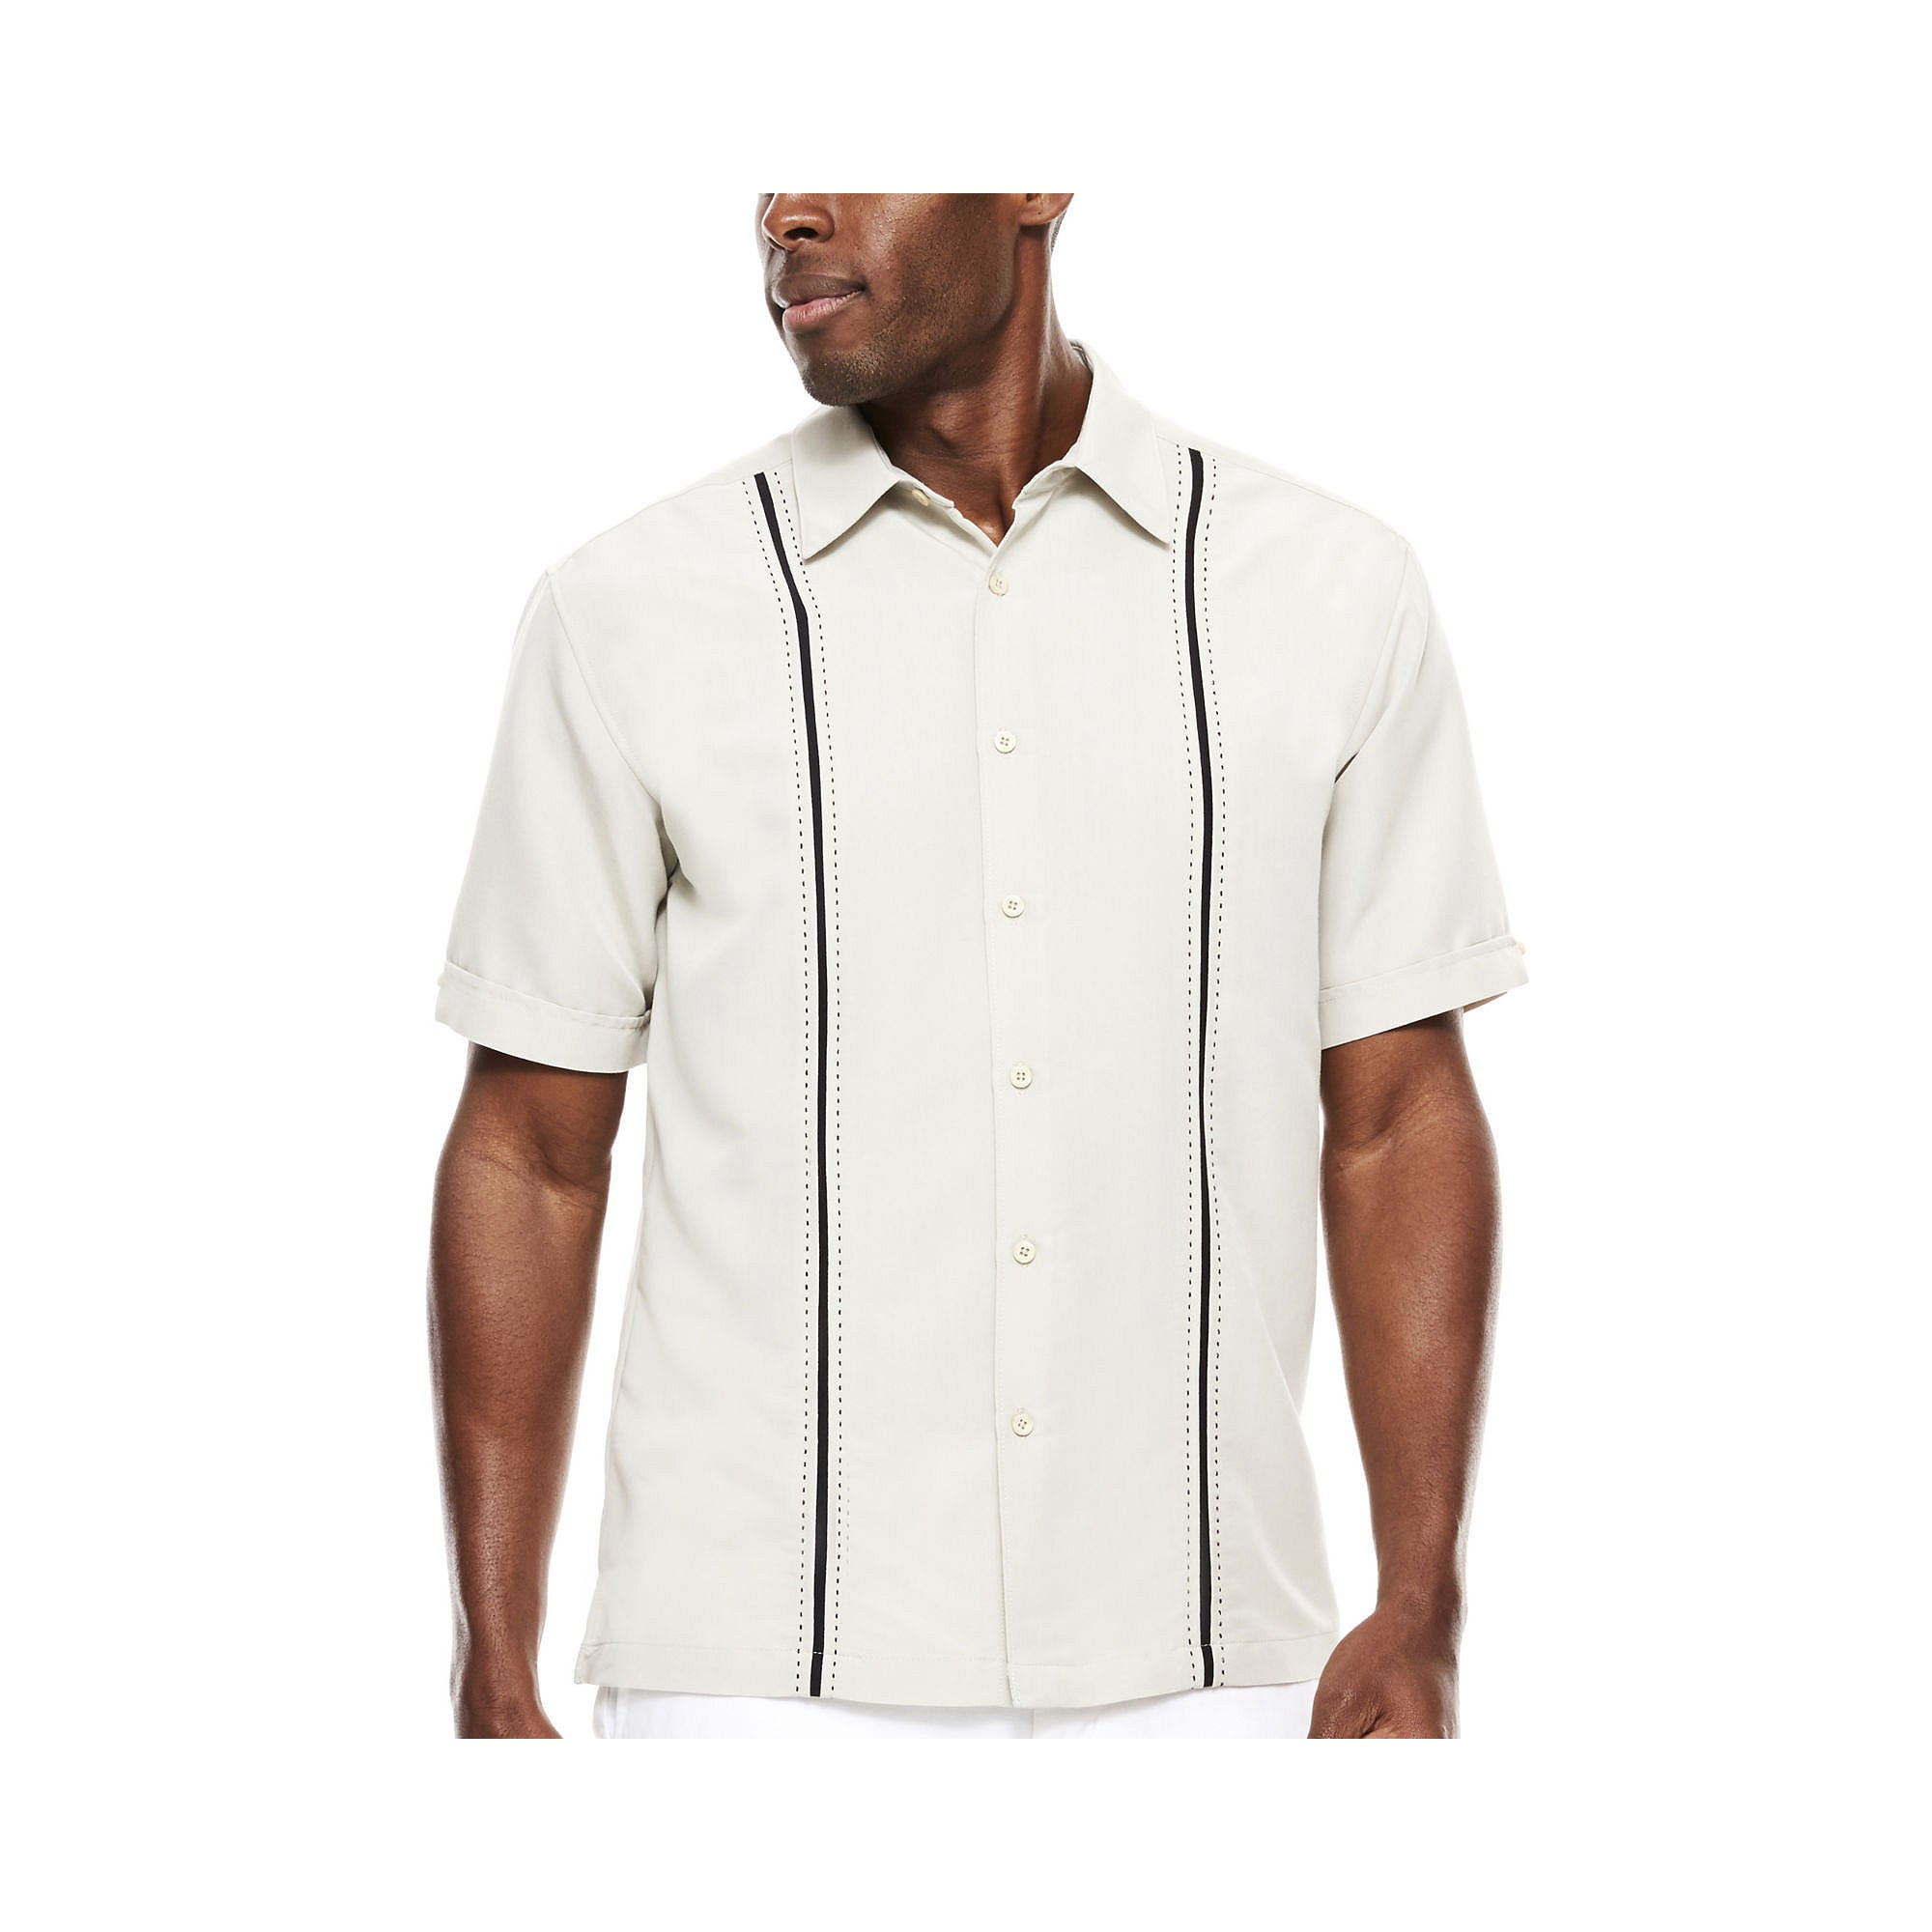 Perry Ellis The Havanera Co. Short-Sleeve Pickstitch Panel Shirt